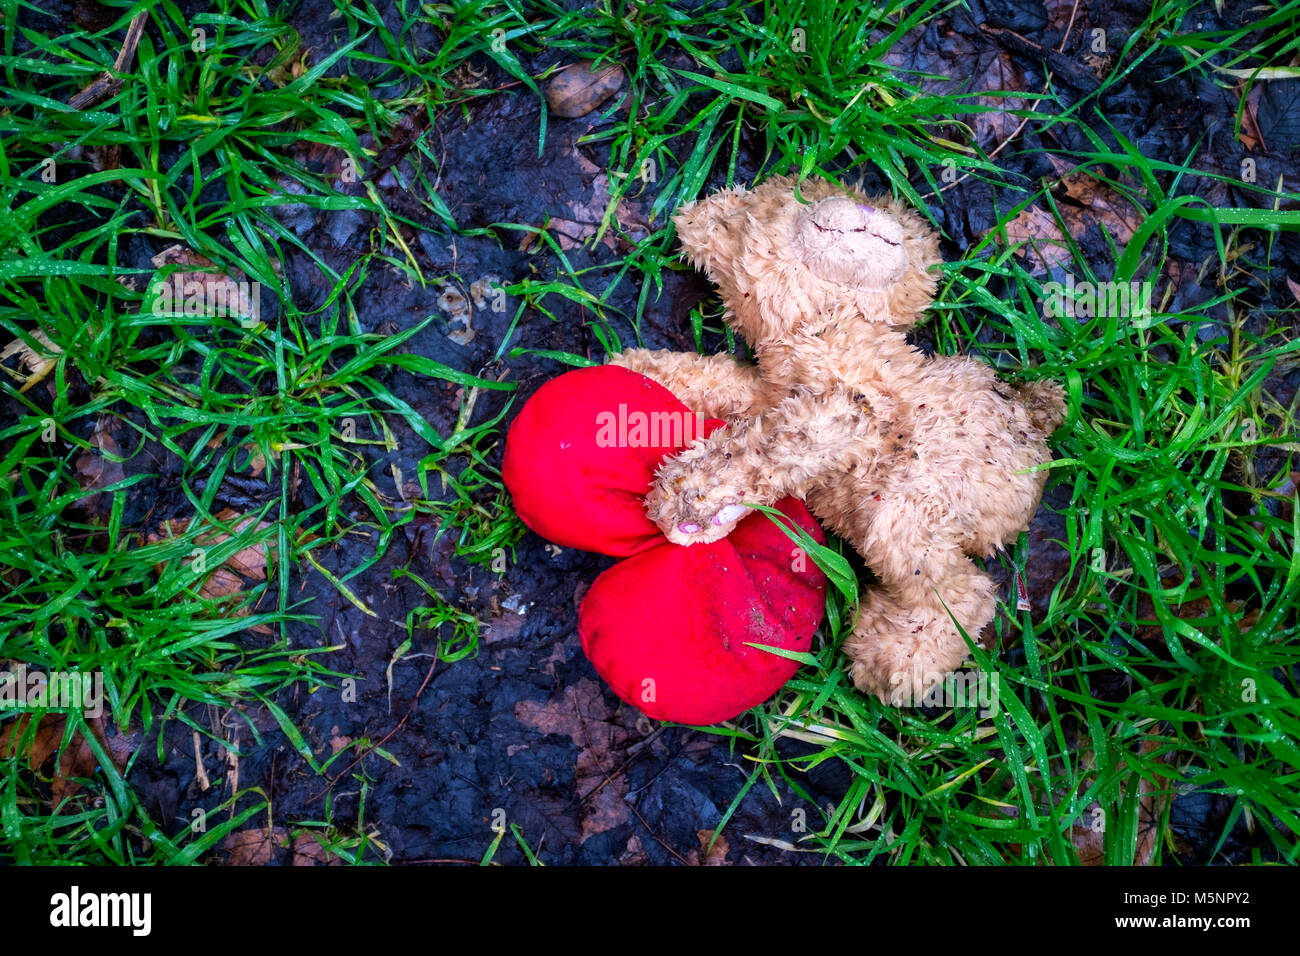 Discarded Valentine's day teddy bear lying on the ground - Stock Image